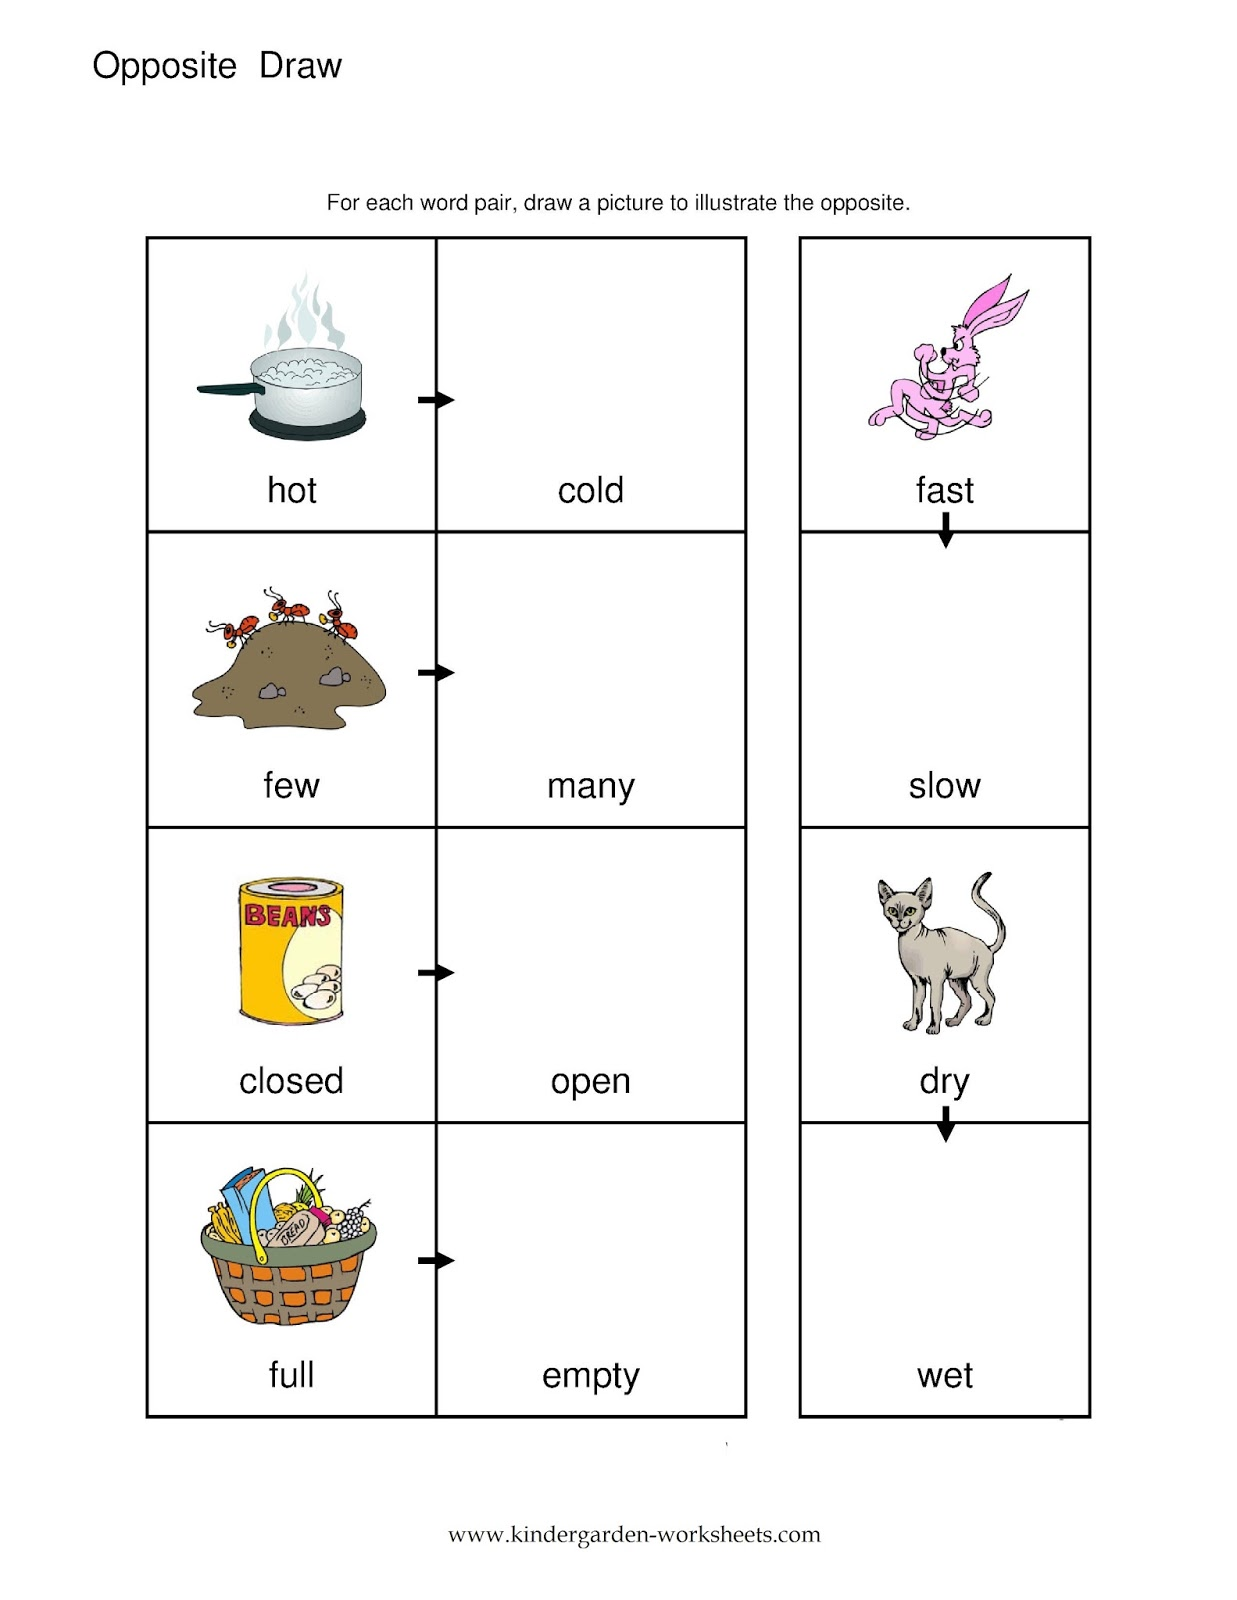 math worksheet : kindergarten worksheets kindergarten worksheets opposite words : Kindergarten Worksheets For English